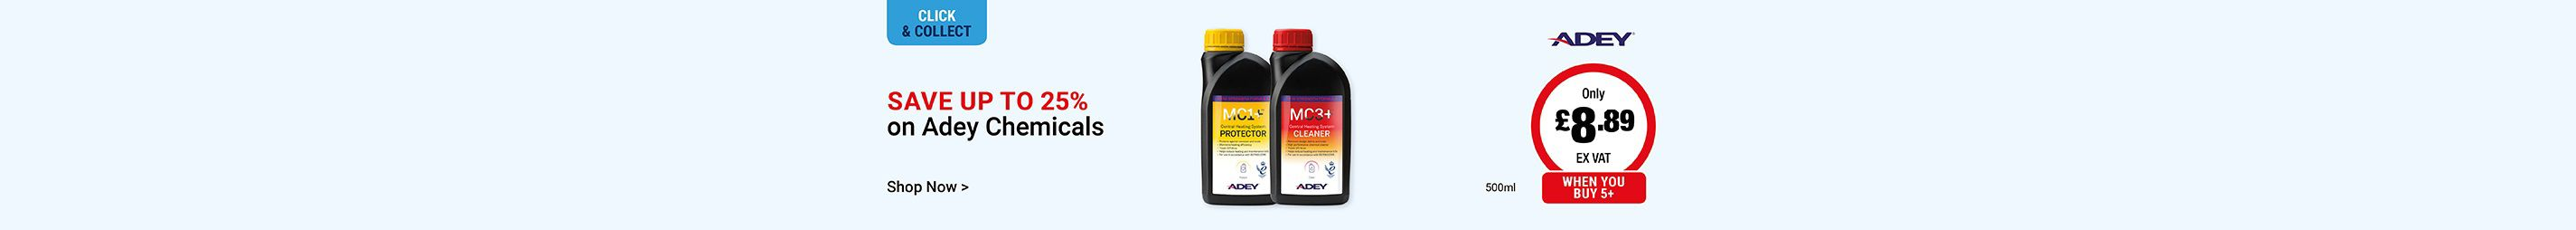 Save up to 25% on Adey Chemicals